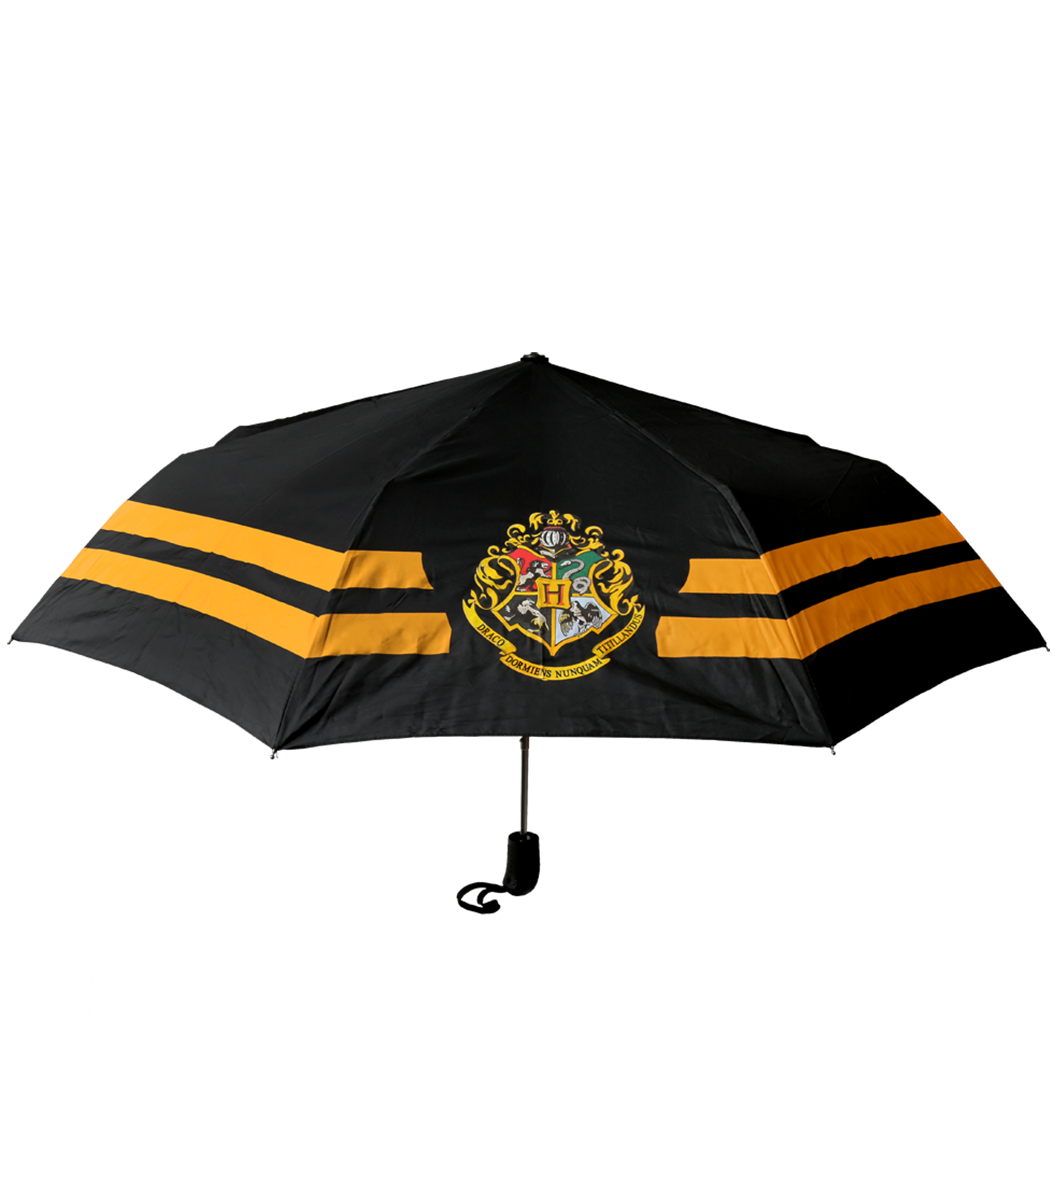 https://cdn.shopify.com/s/files/1/0221/1146/products/Hogwarts_Umbrella.png?v=1511188507